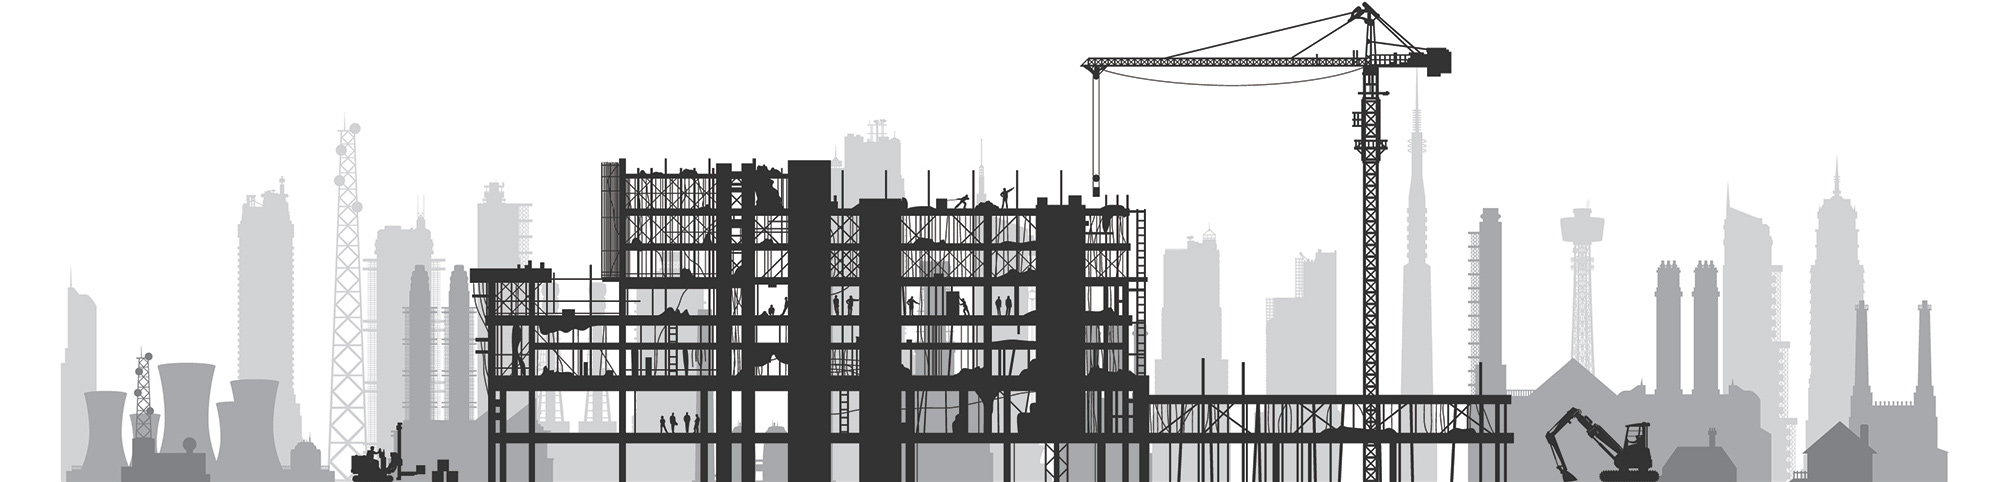 Illustration of construction site with a cityscape